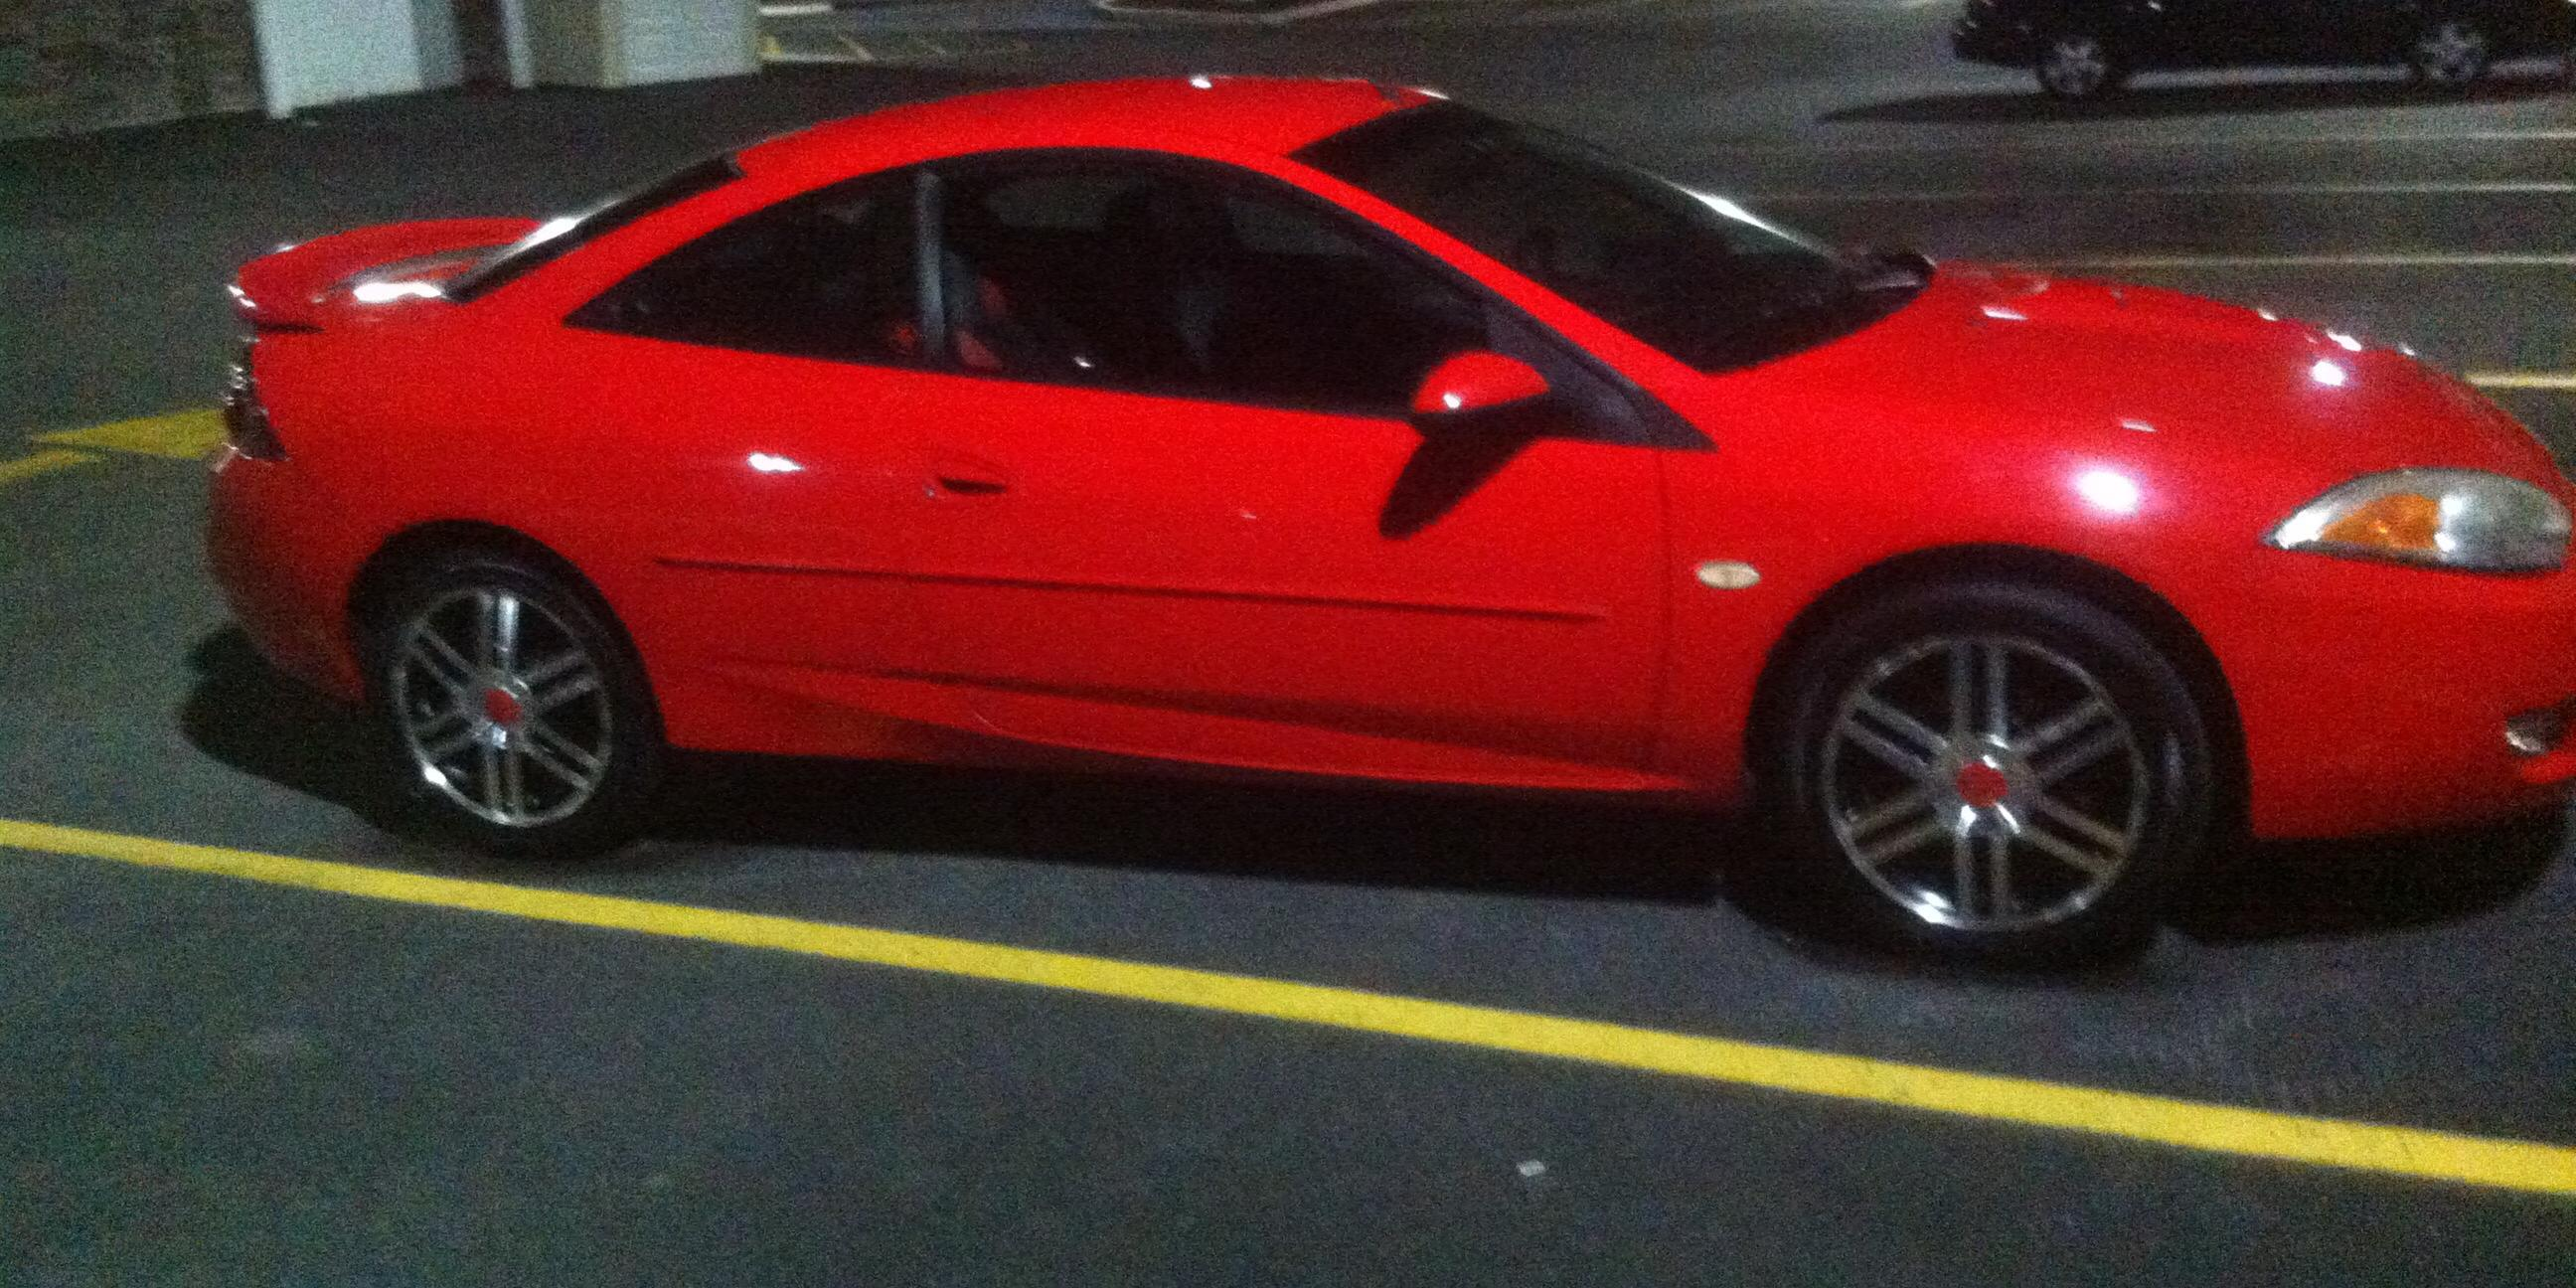 deewa 1999 Mercury Cougar Specs Photos Modification Info at